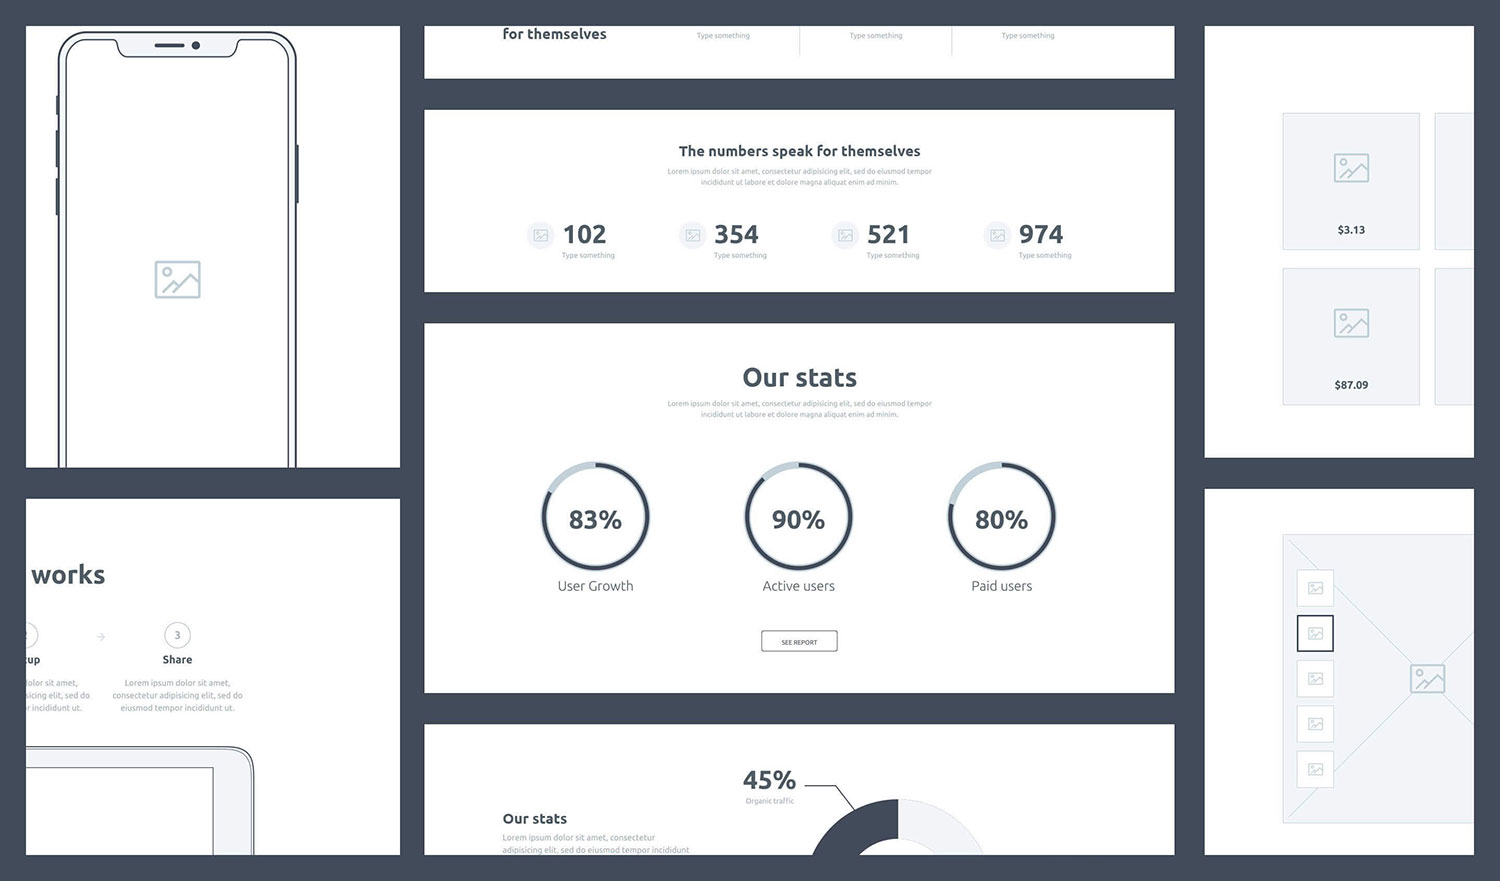 UX Design wireframes for analytics, eCommerce, and how SaaS works